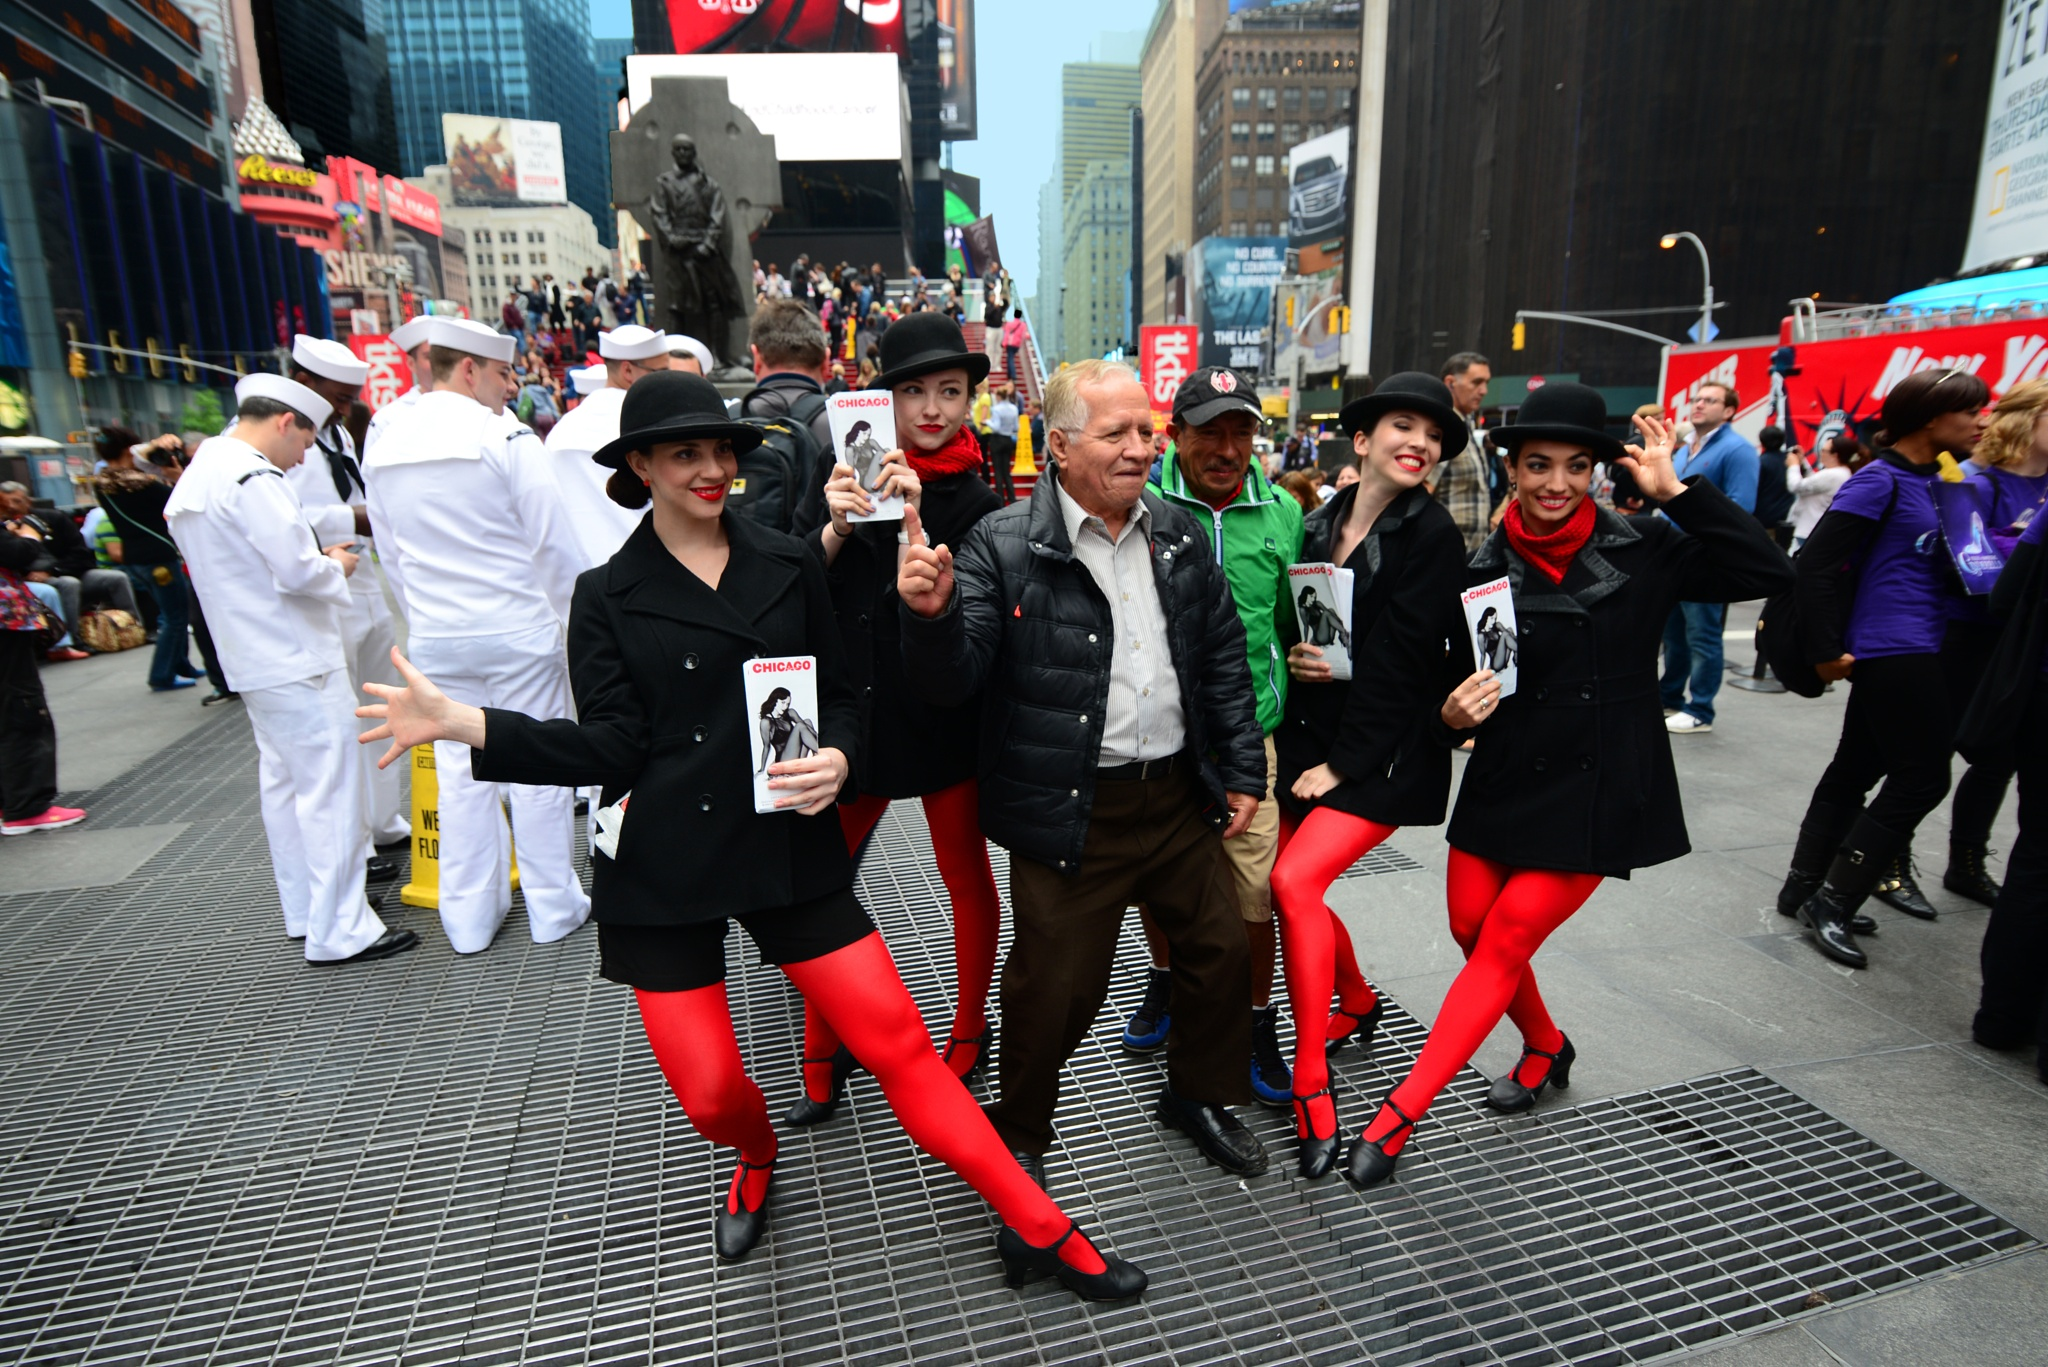 Broadway Promo at Times Square NYC by Nelson Sibulo